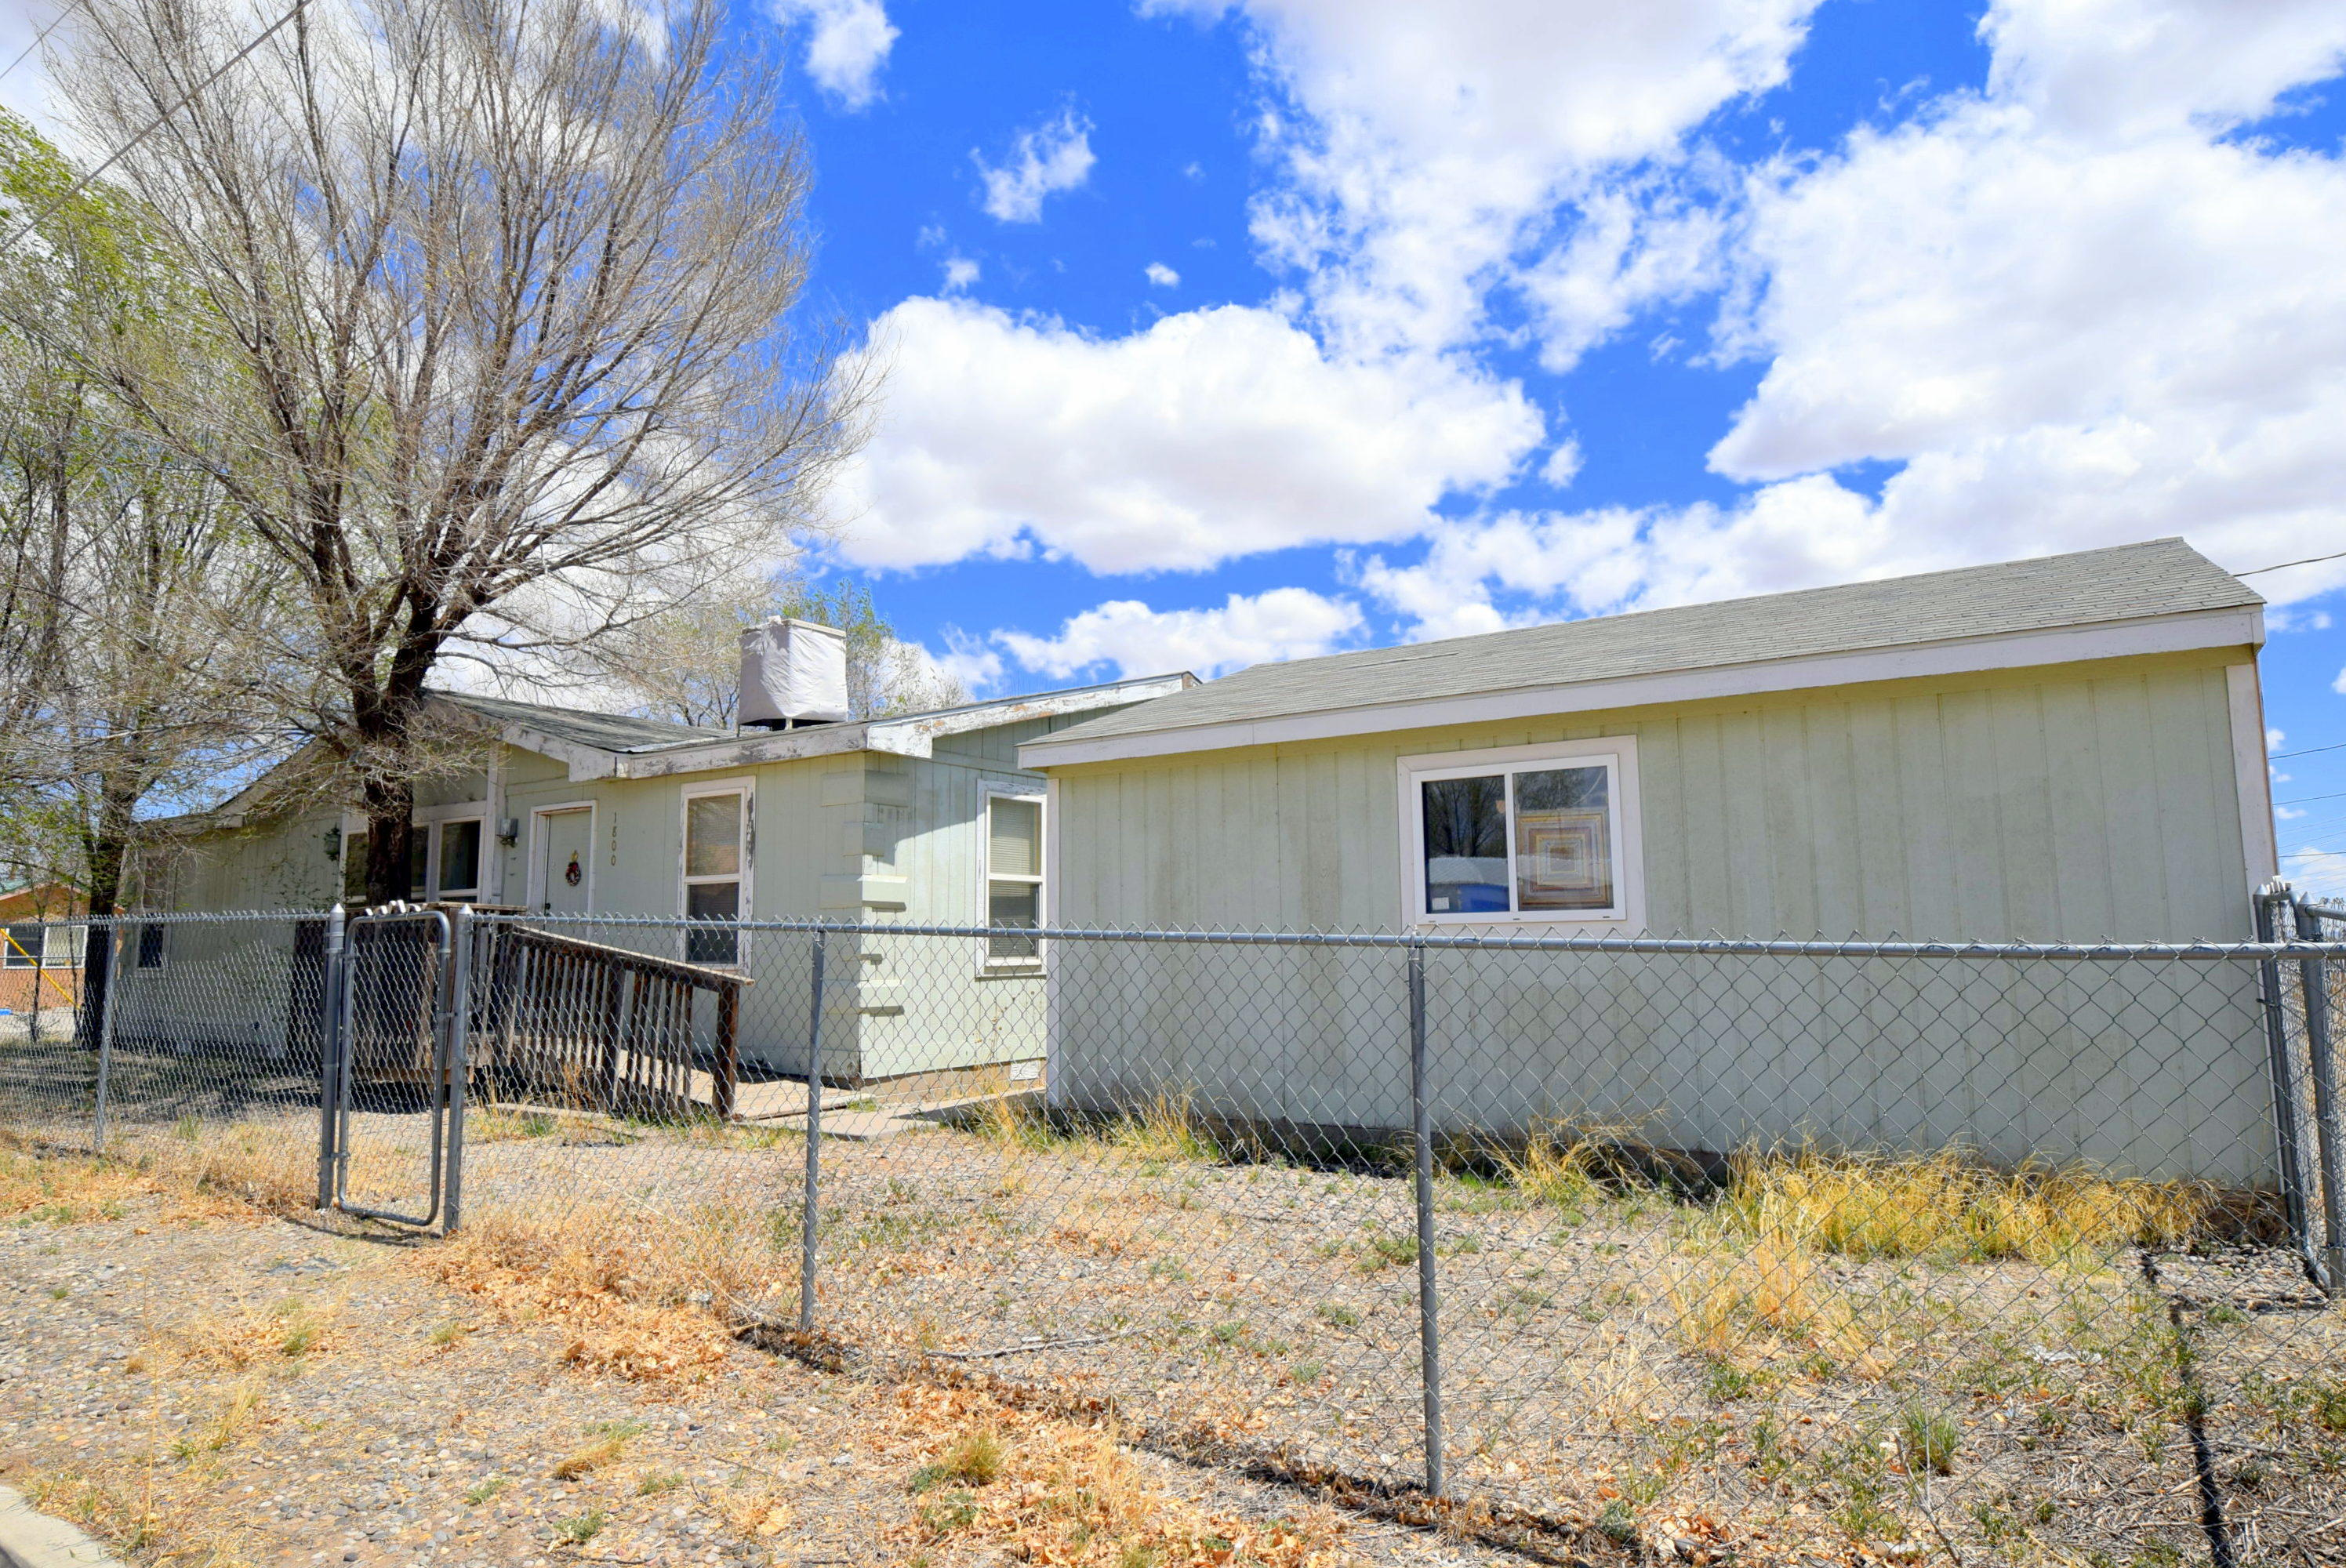 Small town living a short commute from town! Fully fenced yard and a 2 car garage. Alley and back yard access.